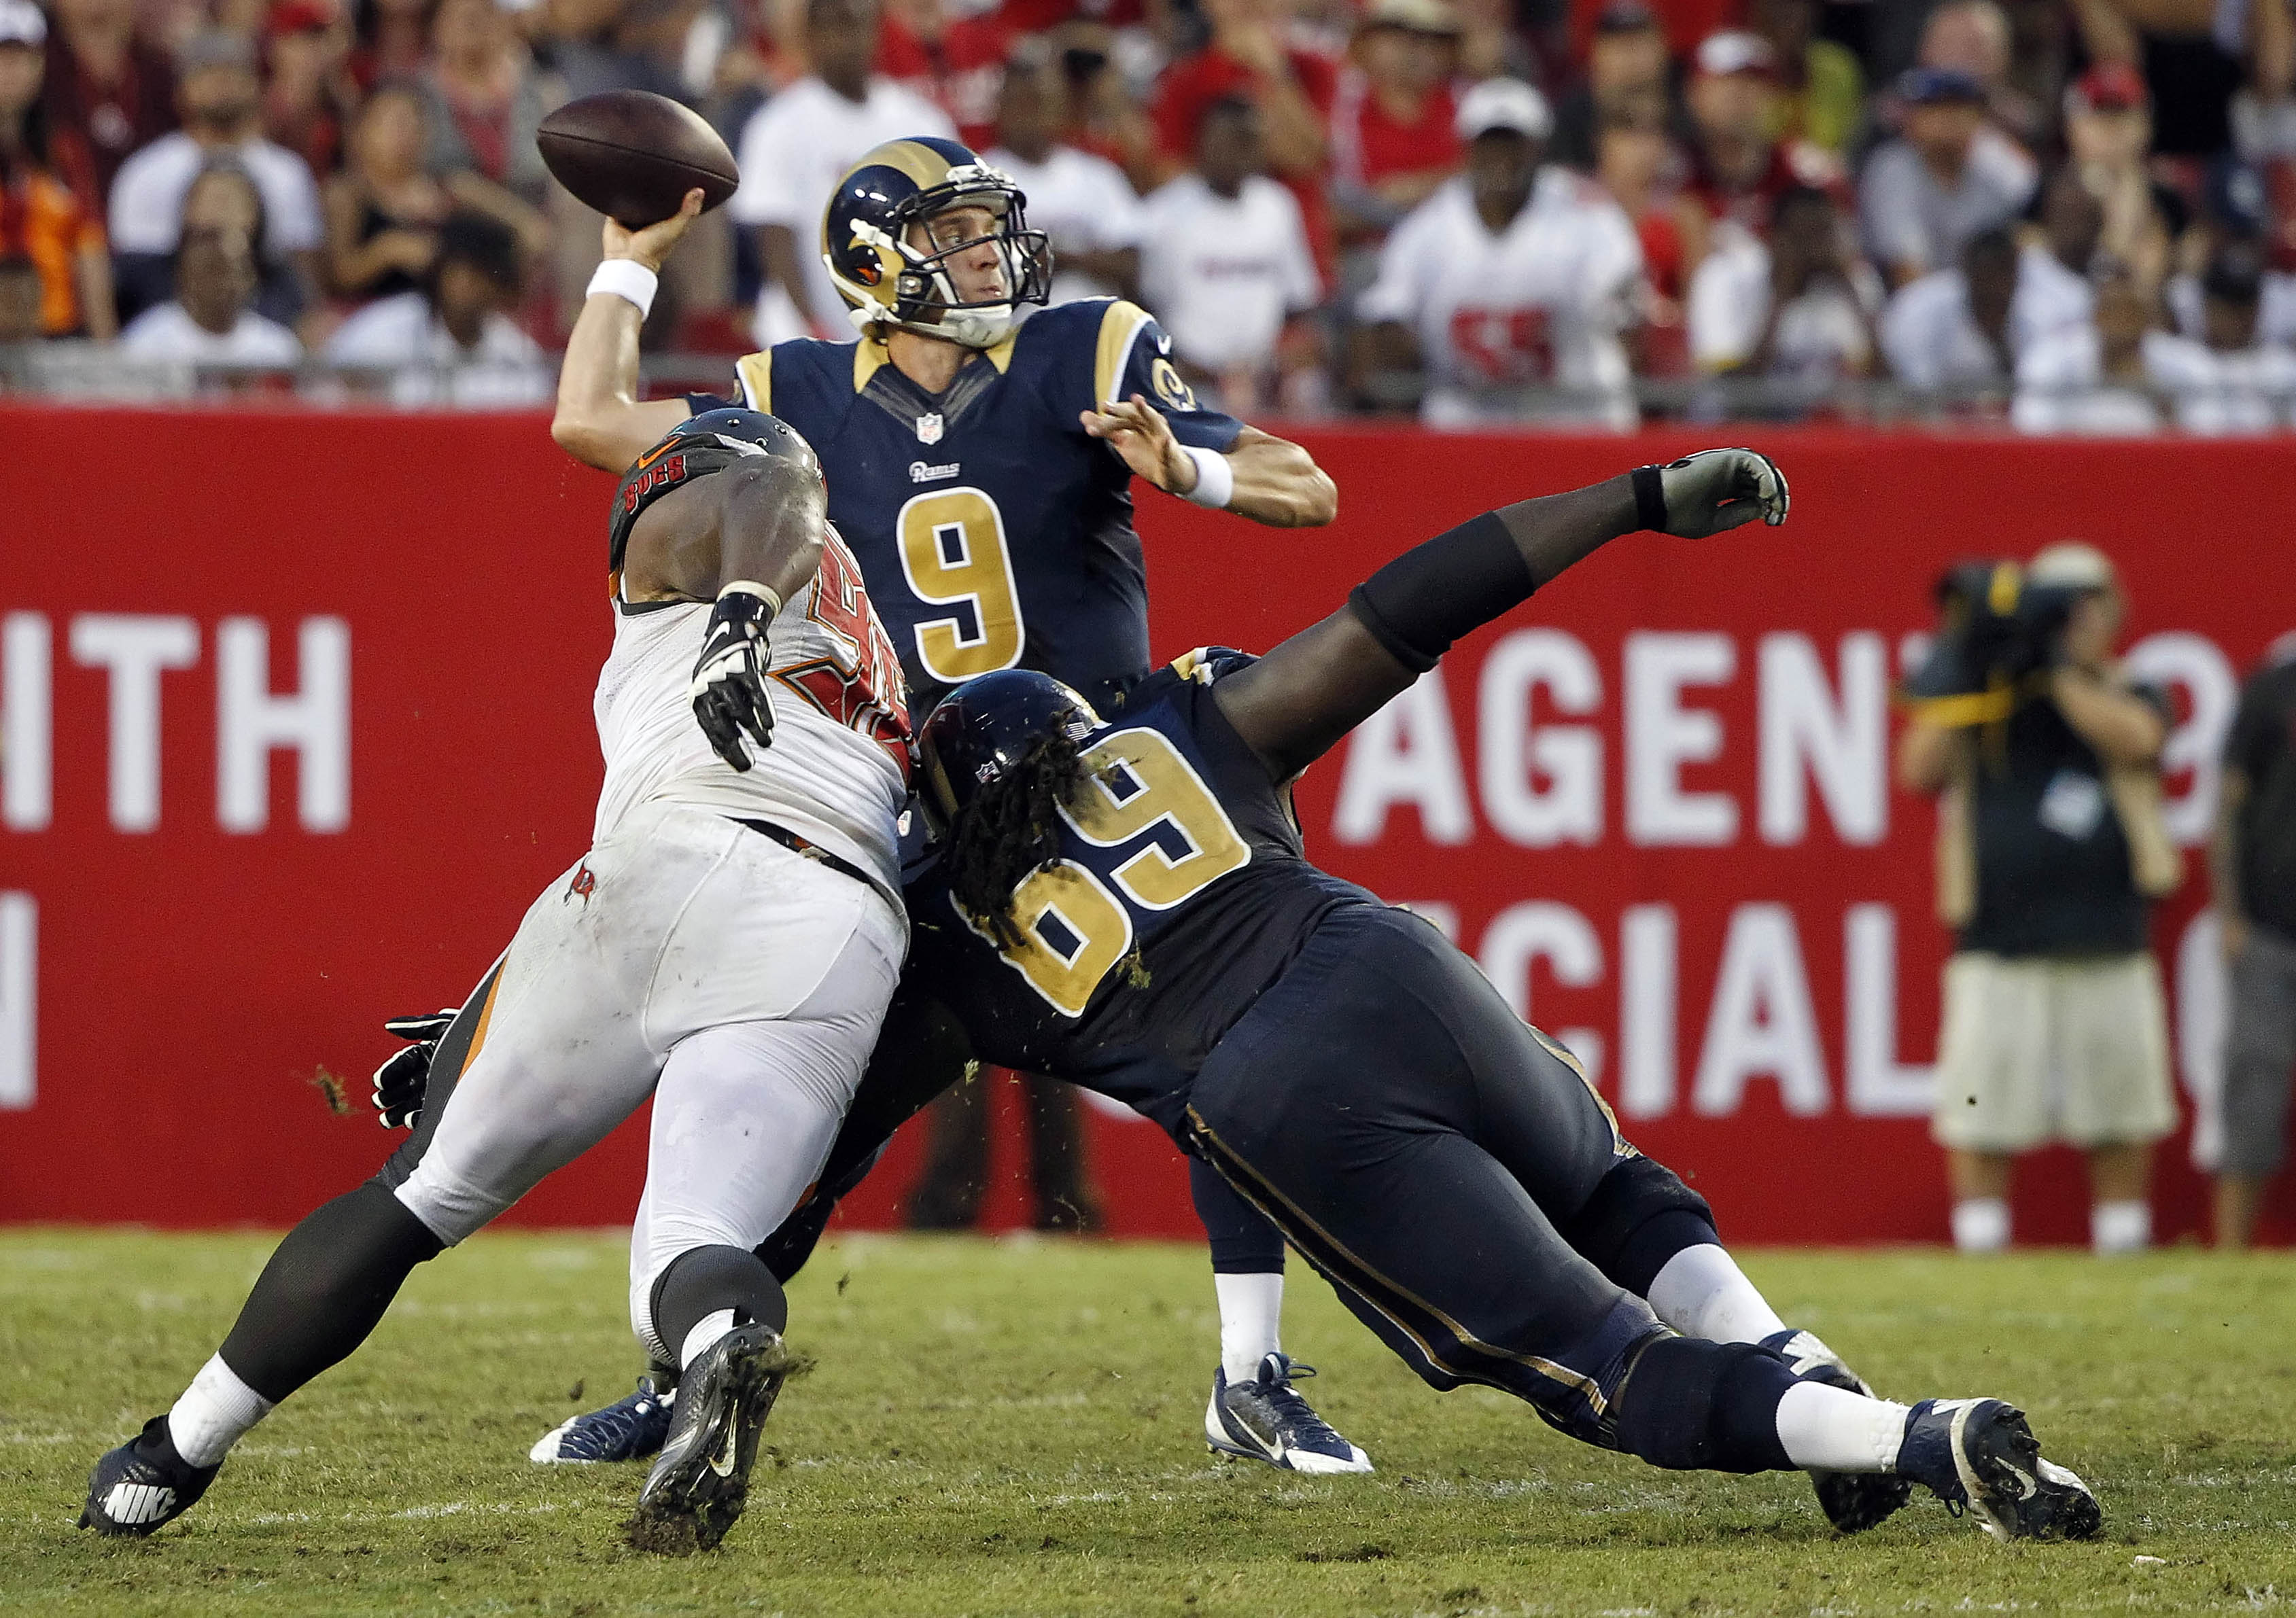 8088461-nfl-st.-louis-rams-at-tampa-bay-buccaneers